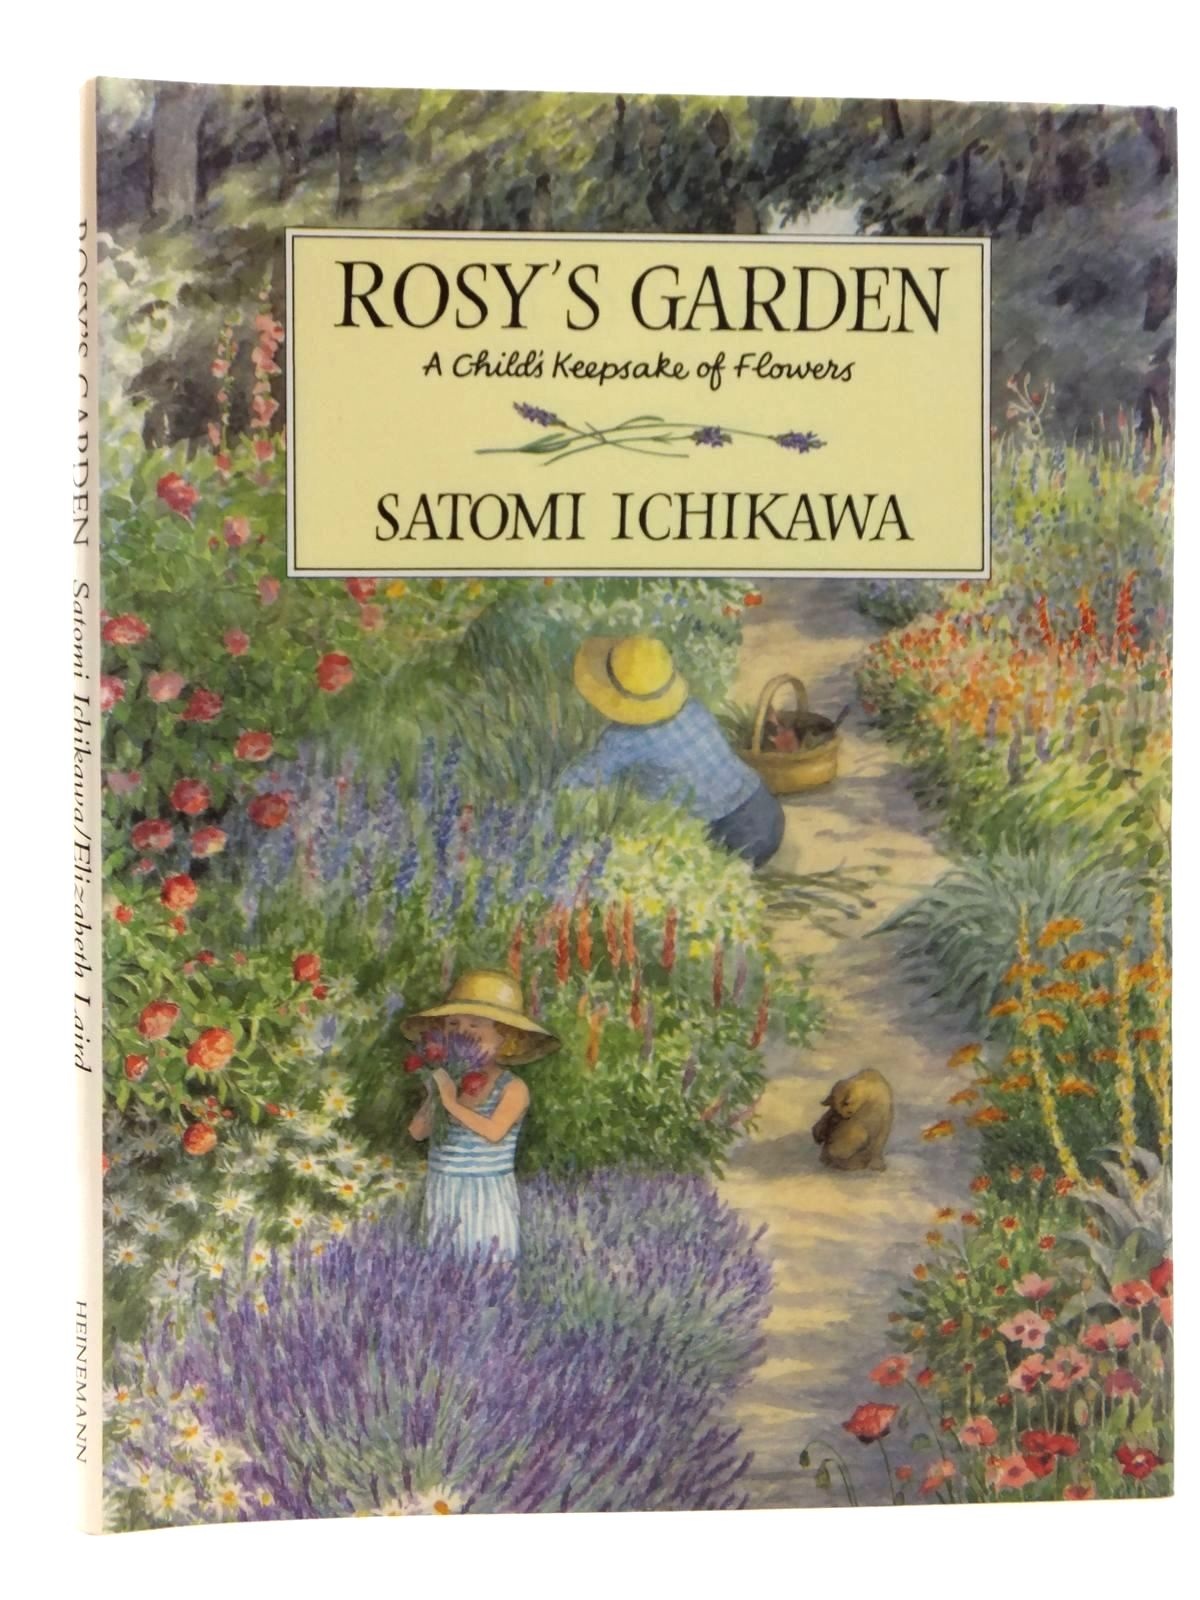 Photo of ROSY'S GARDEN written by Laird, Elizabeth illustrated by Ichikawa, Satomi published by William Heinemann Ltd. (STOCK CODE: 1317039)  for sale by Stella & Rose's Books